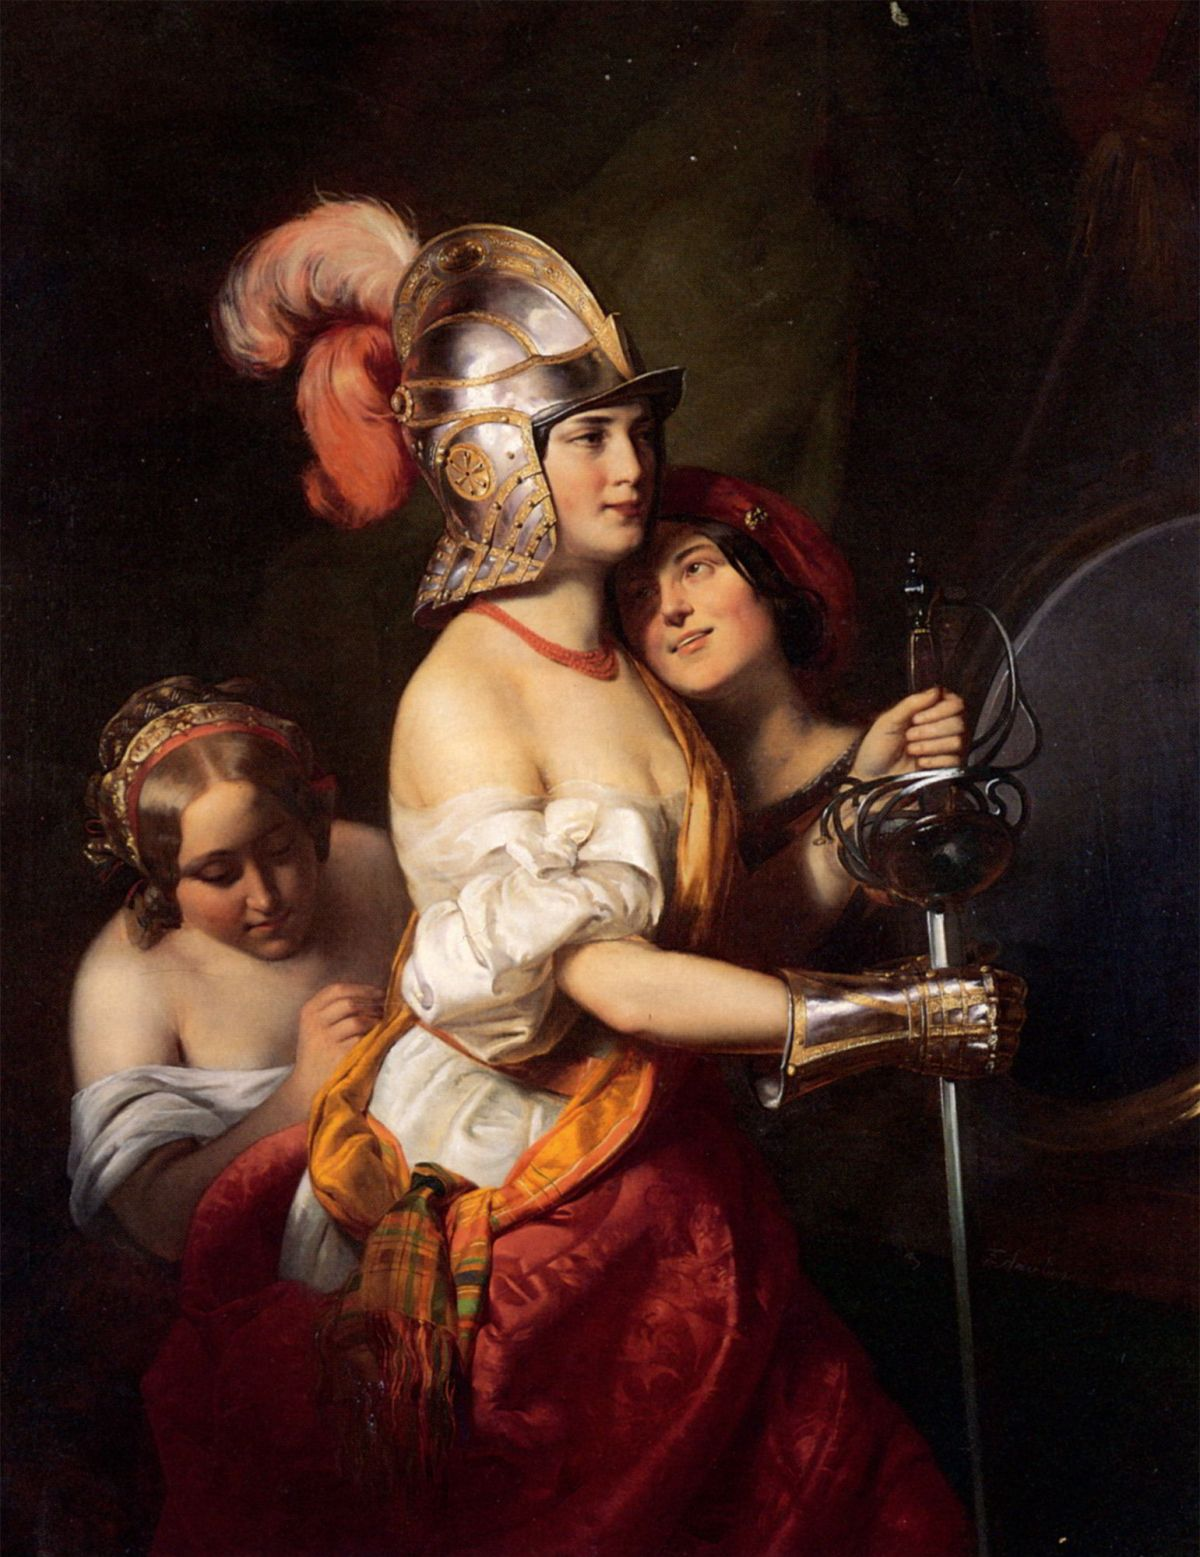 The Armed Maiden by Friedrich von Amerling